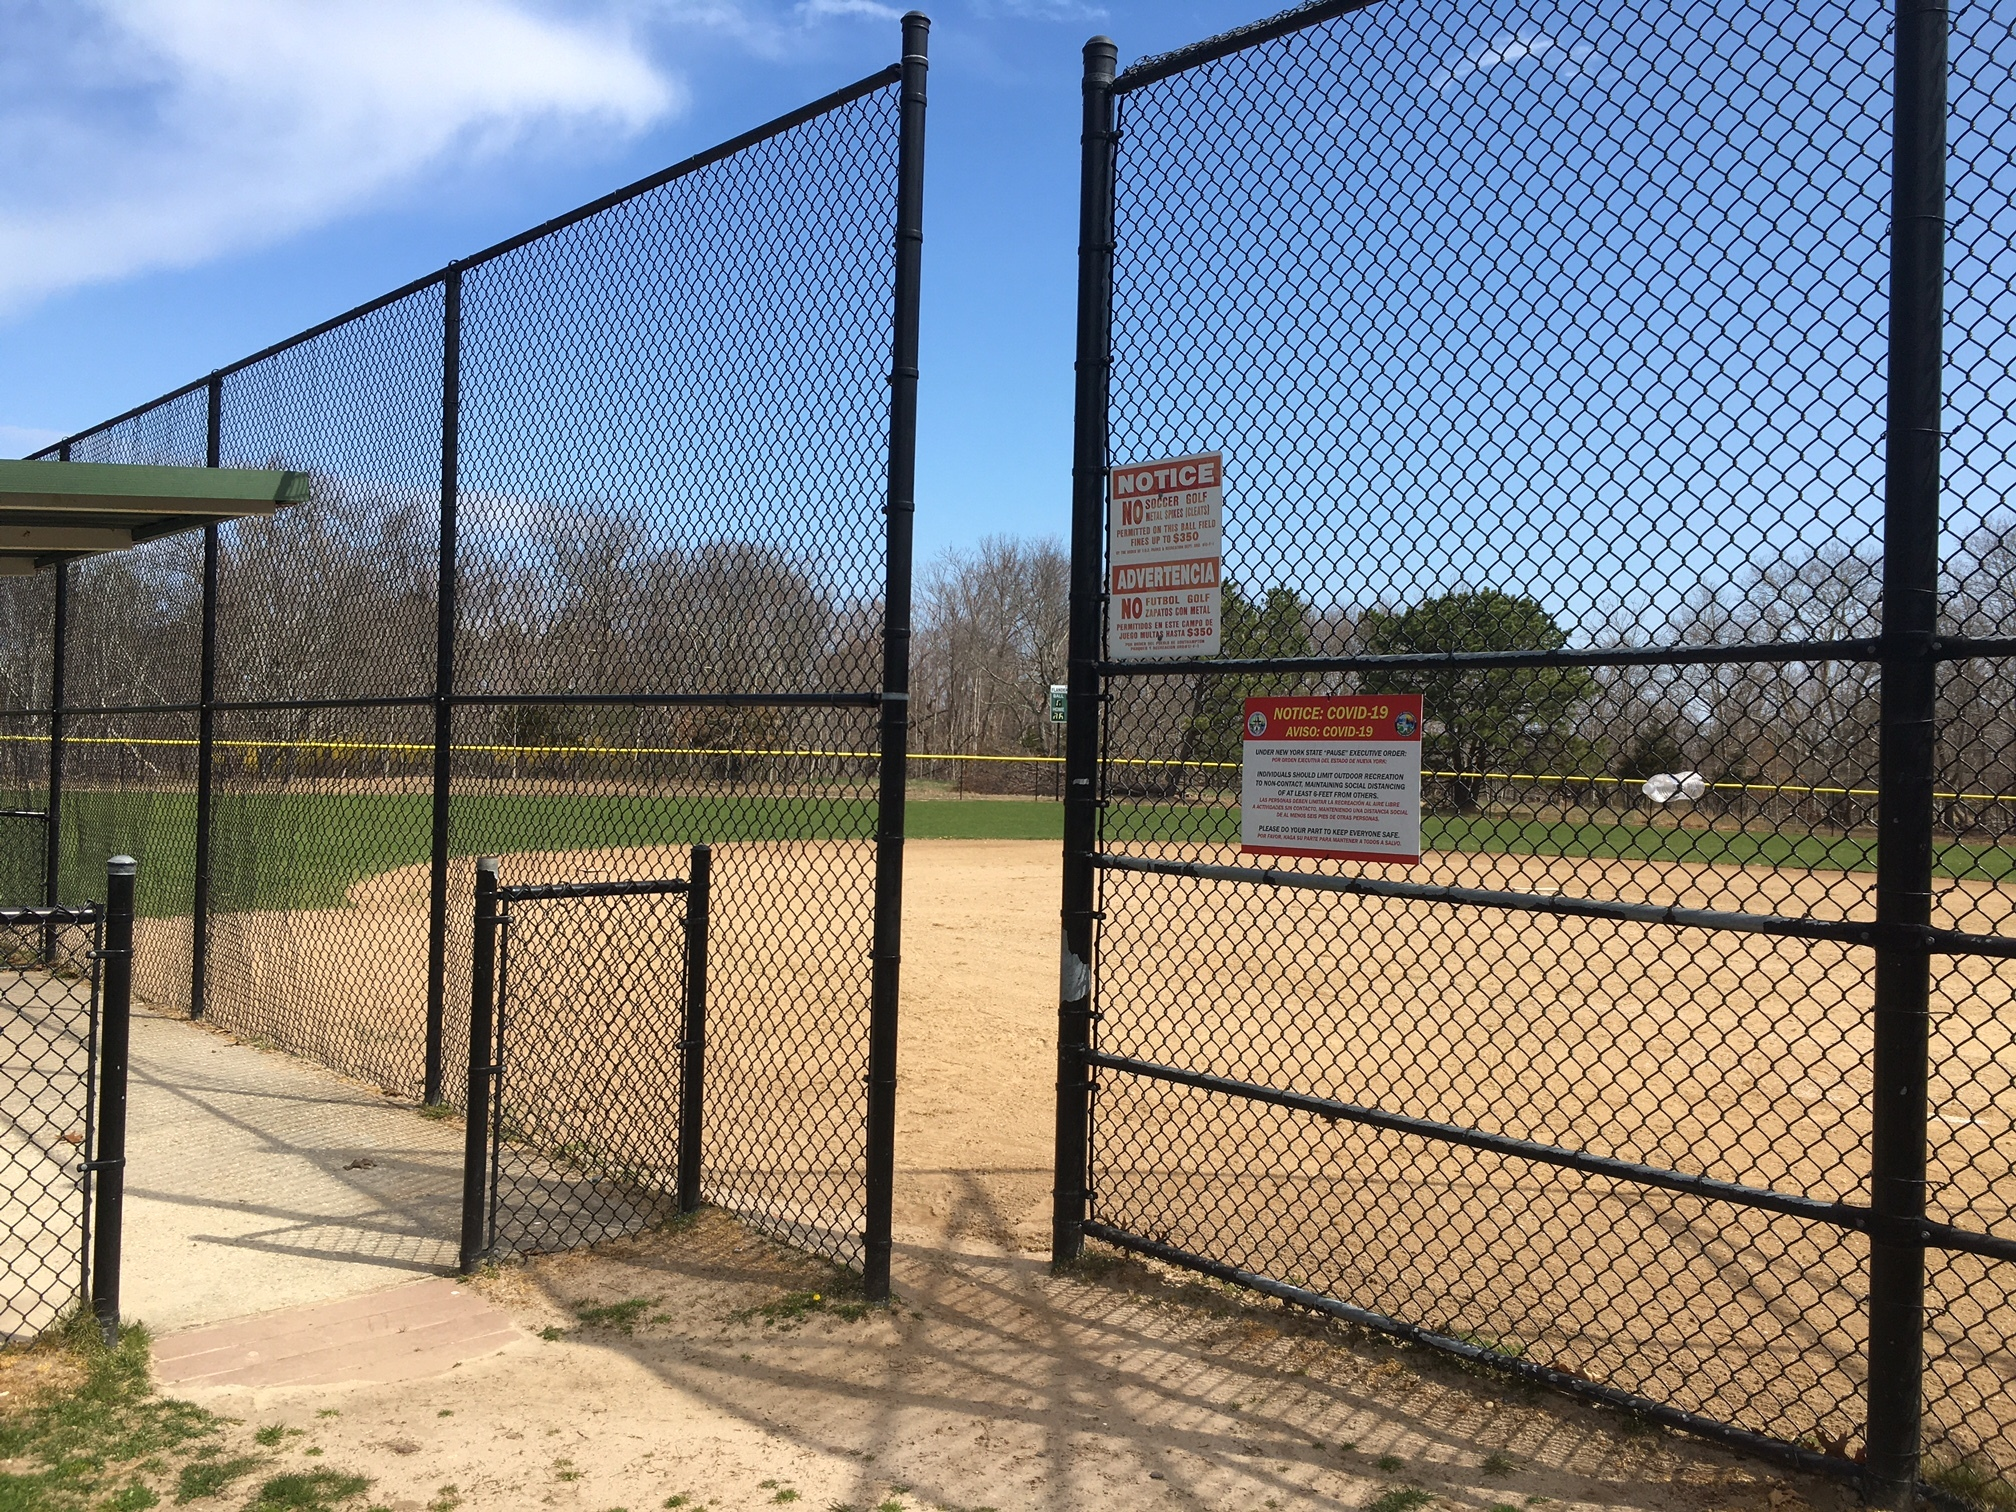 On a sunny spring Saturday, the ballfield at Iron Point Park is empty.